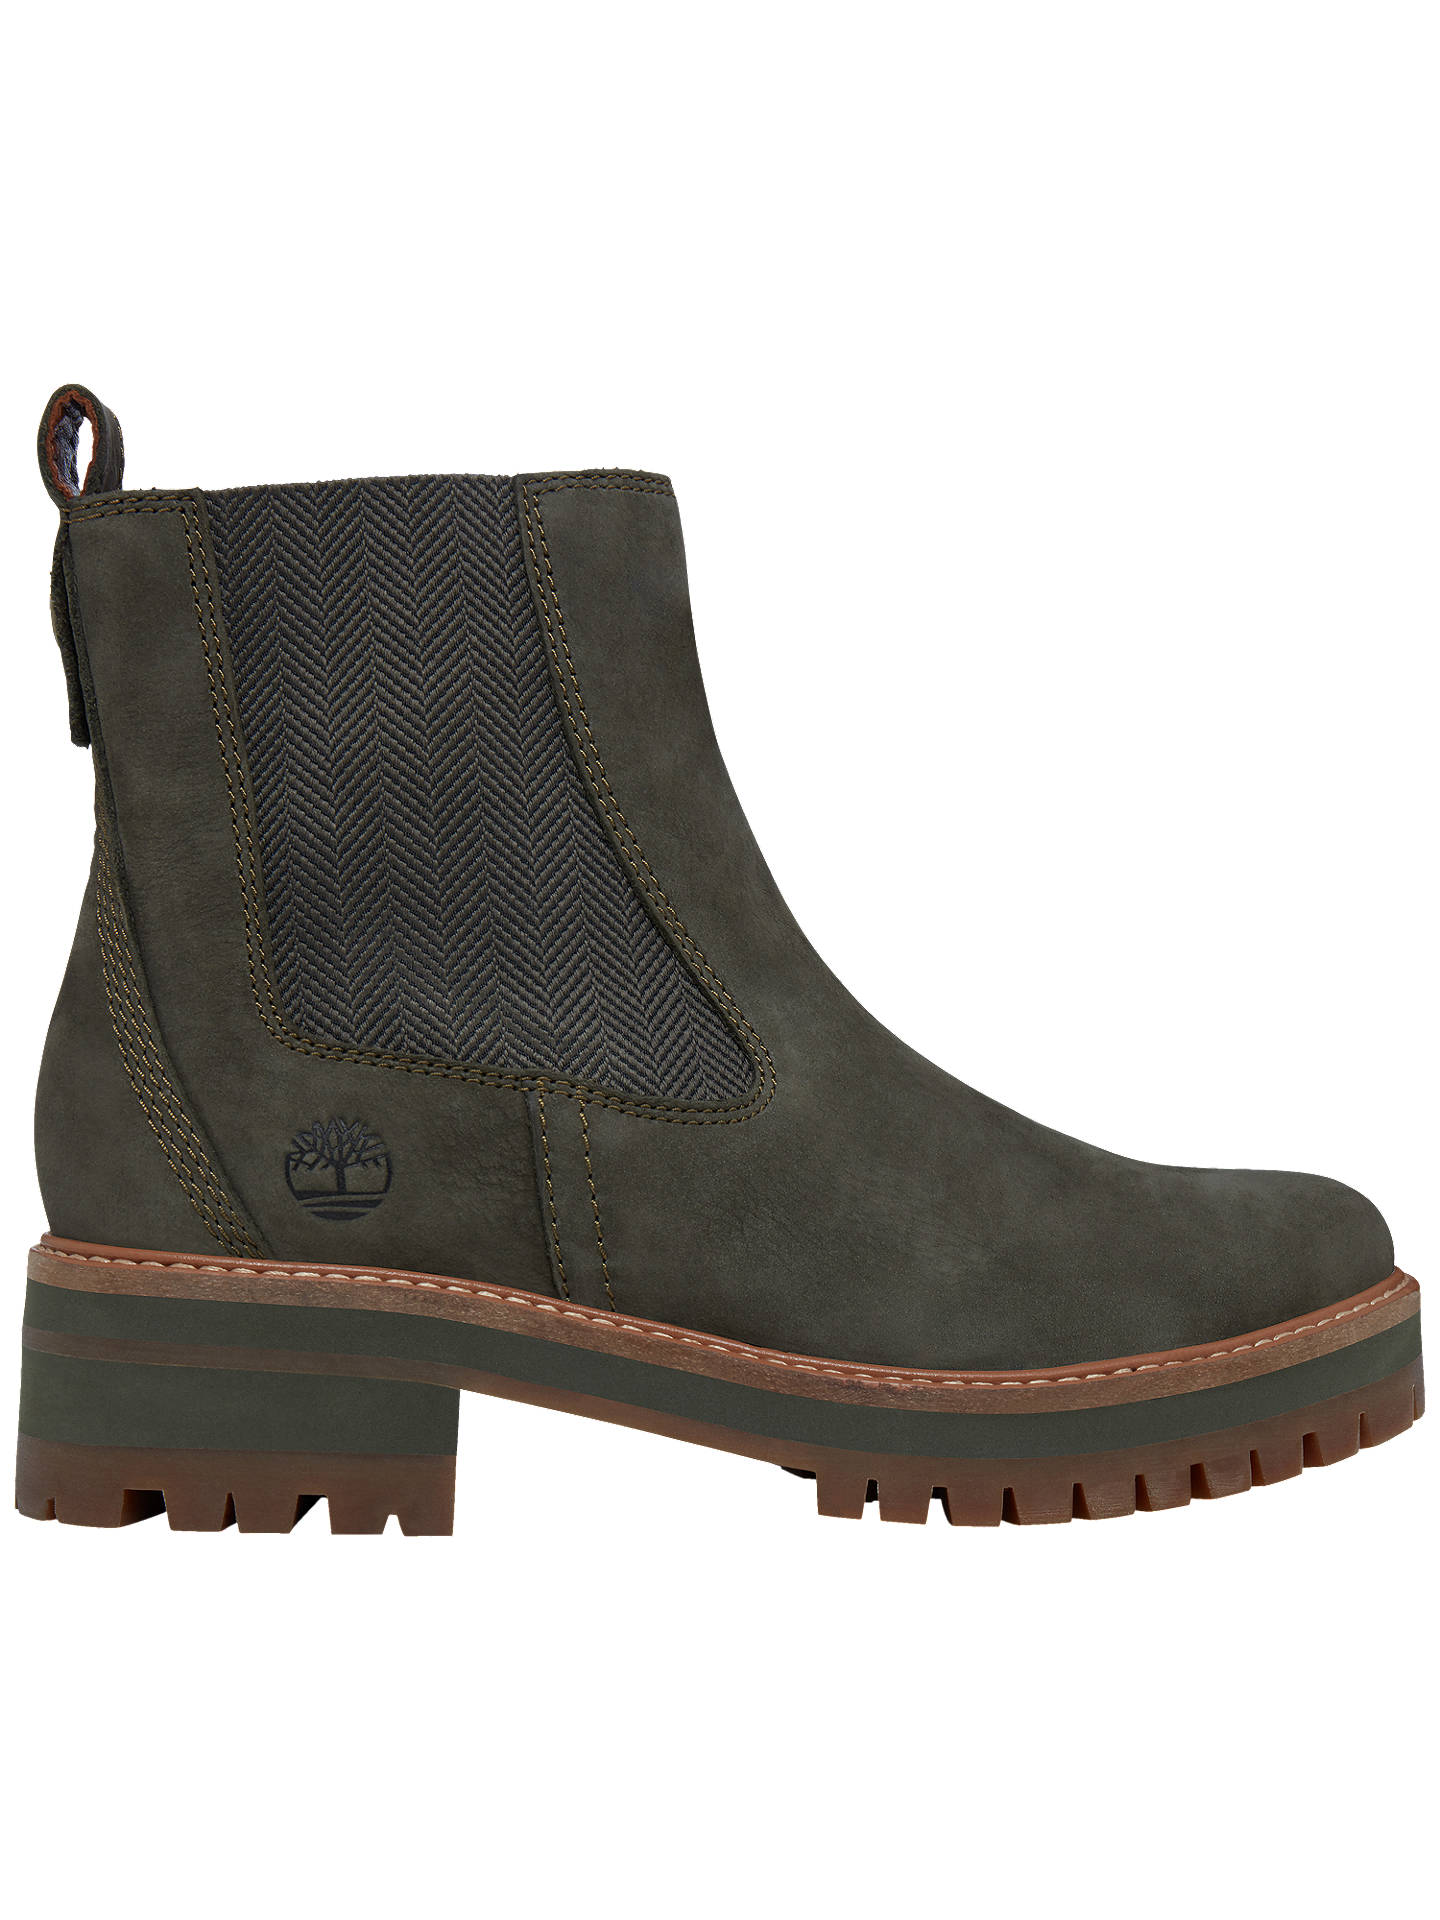 44533d905aae7 Timberland Courmayeur Valley Chelsea Boots at John Lewis   Partners